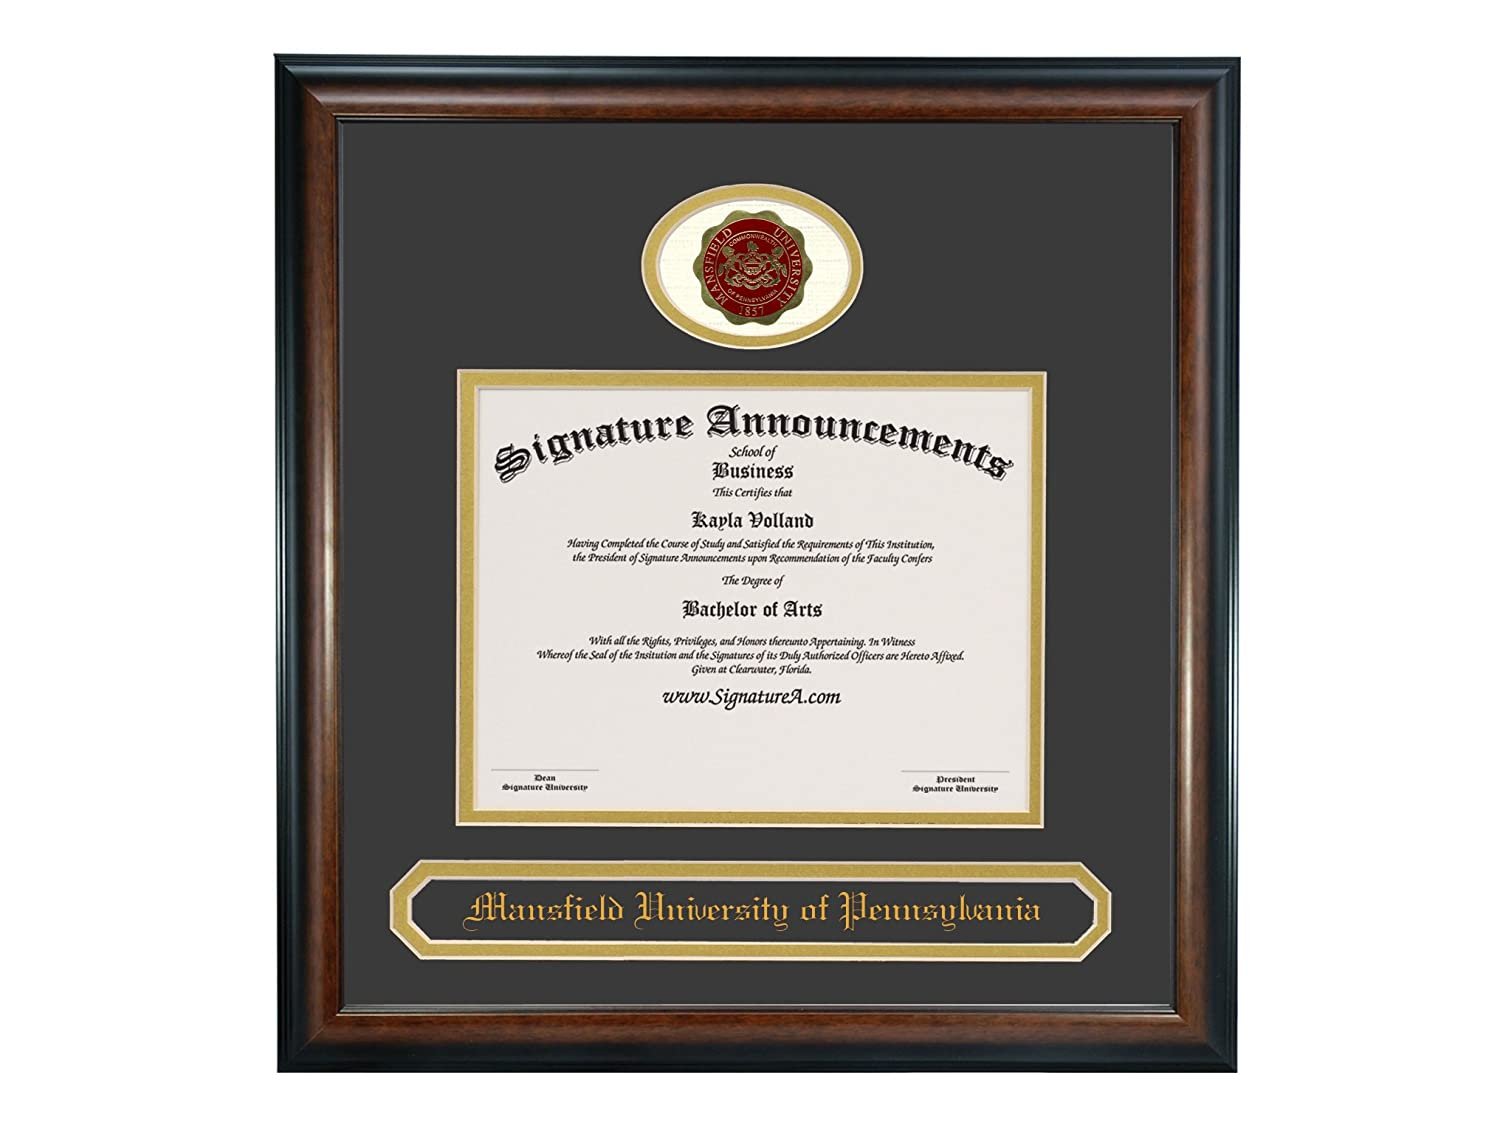 Signature Announcements Mansfield-University-of-Pennsylvania Undergraduate Professional//Doctor Sculpted Foil Seal /& Name Graduation Diploma Frame 16 x 16 Matte Mahogany